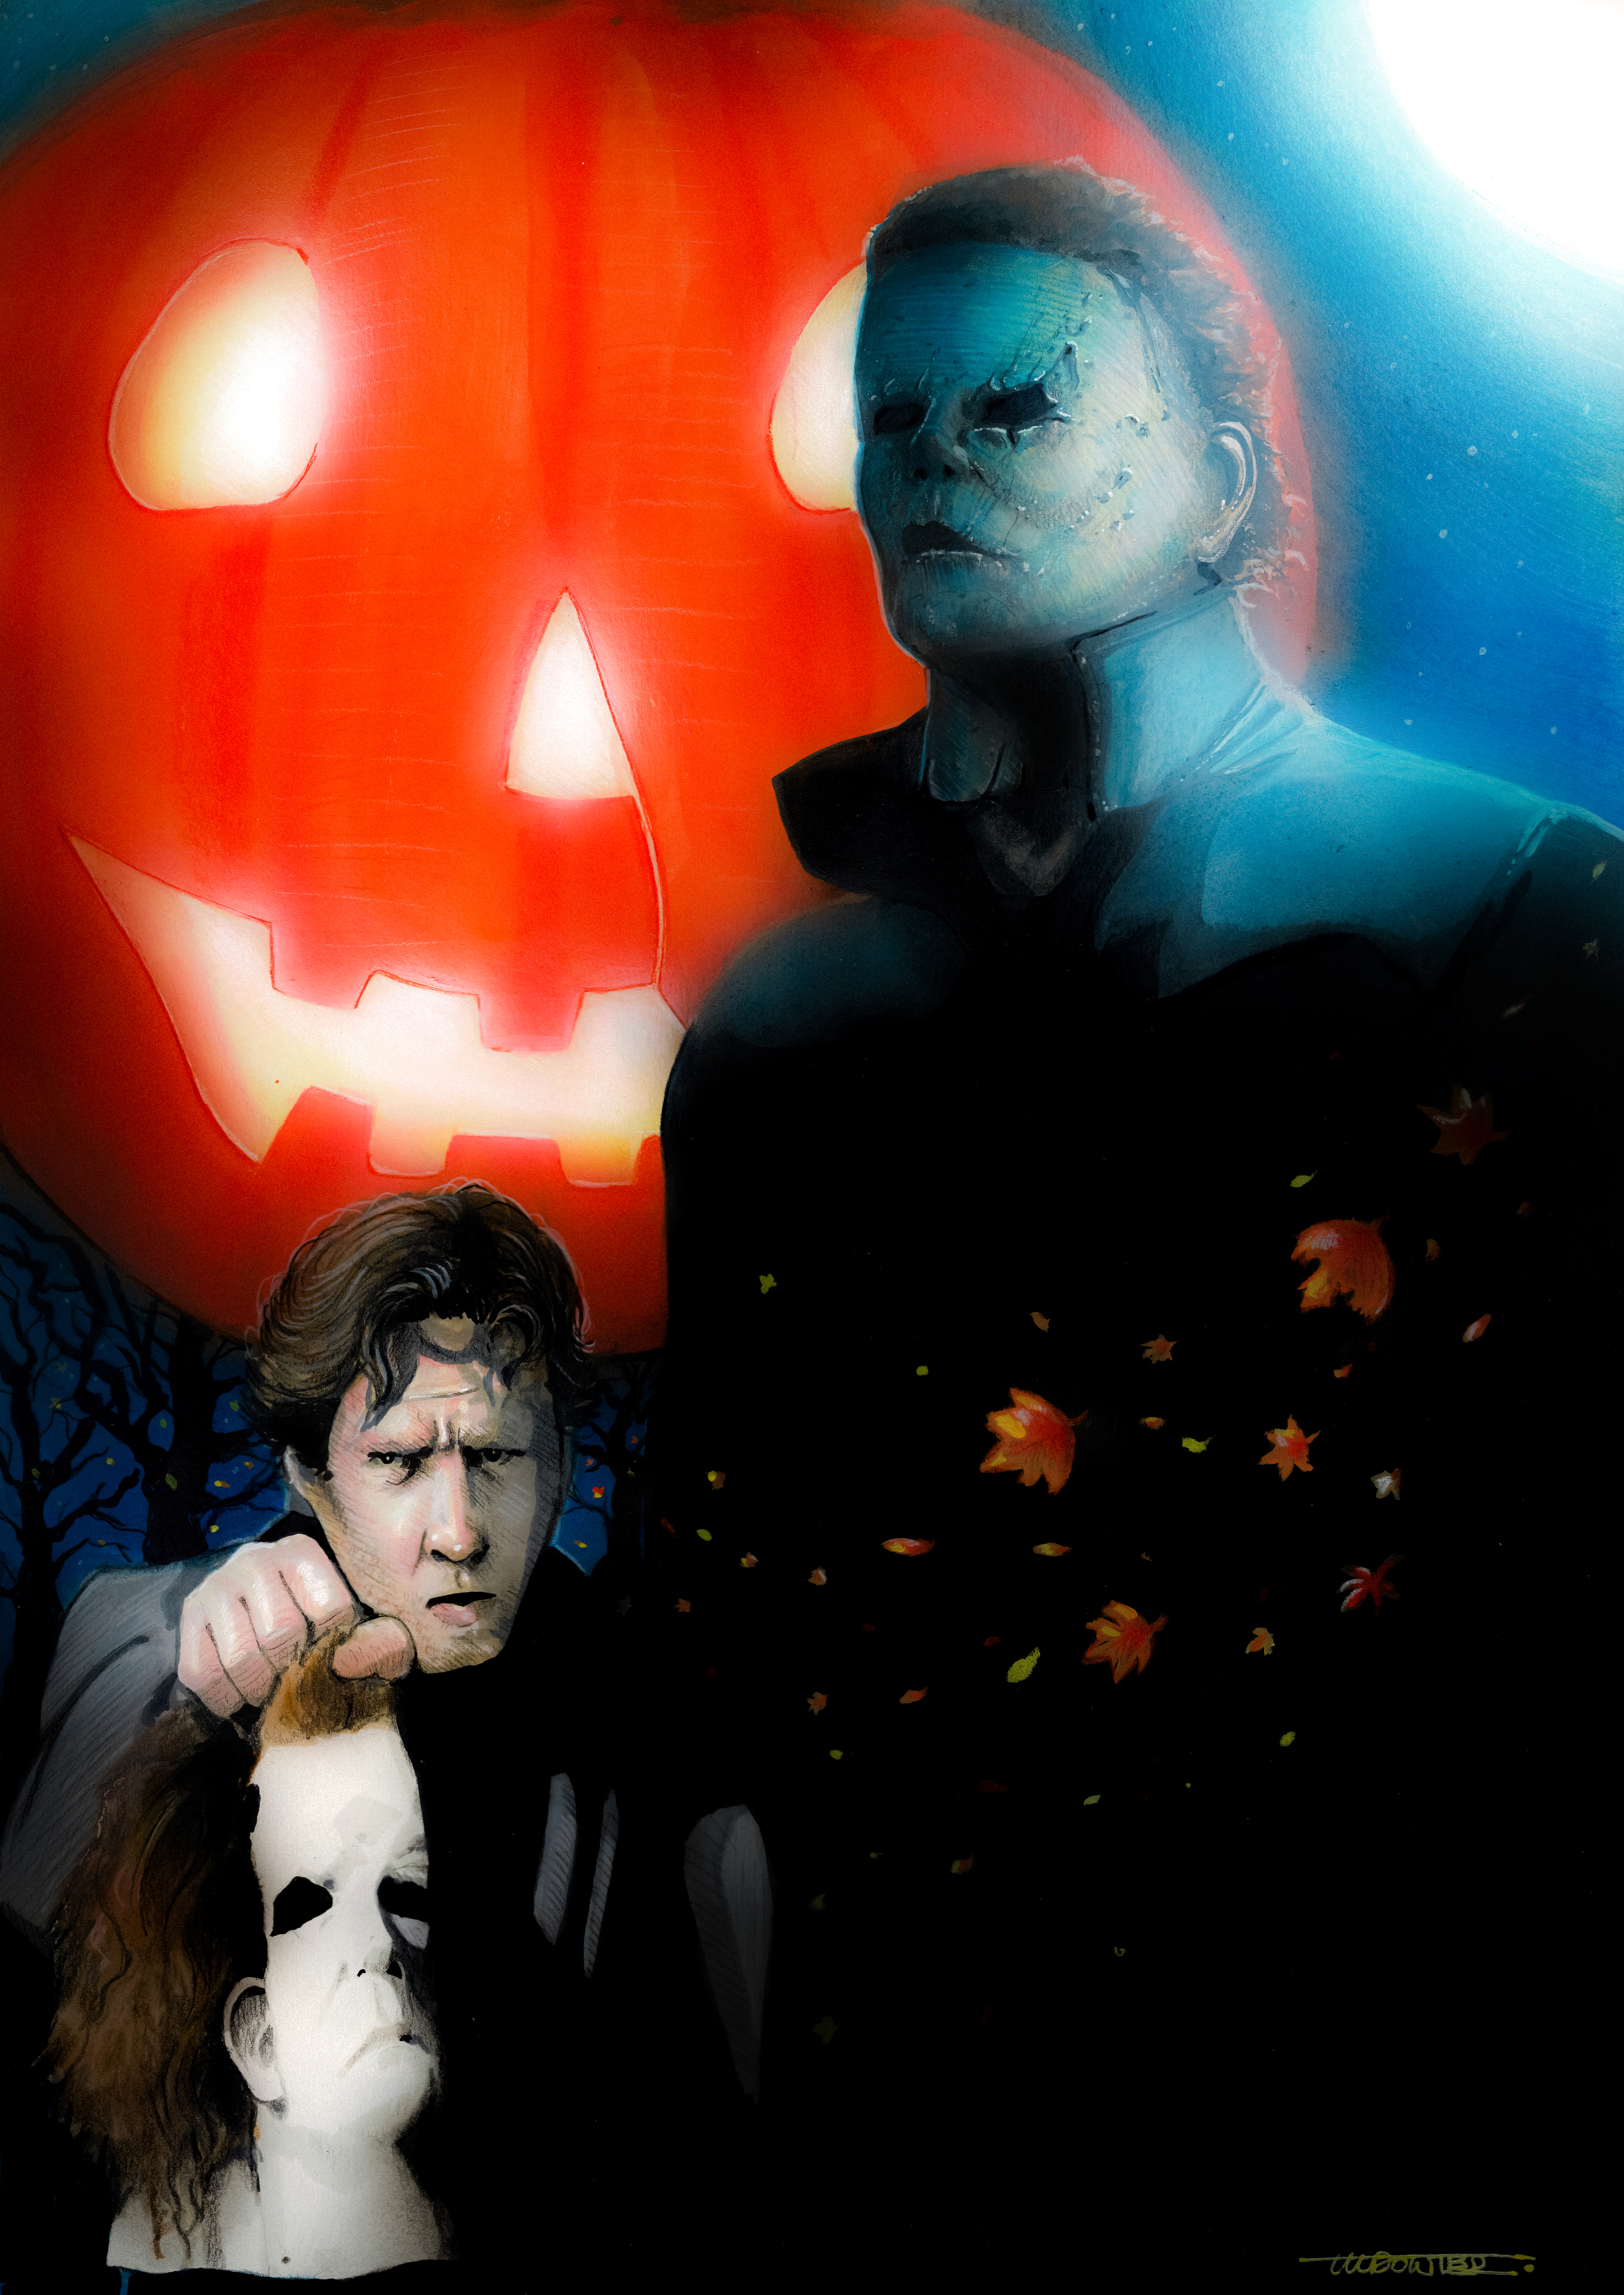 Halloween artwork